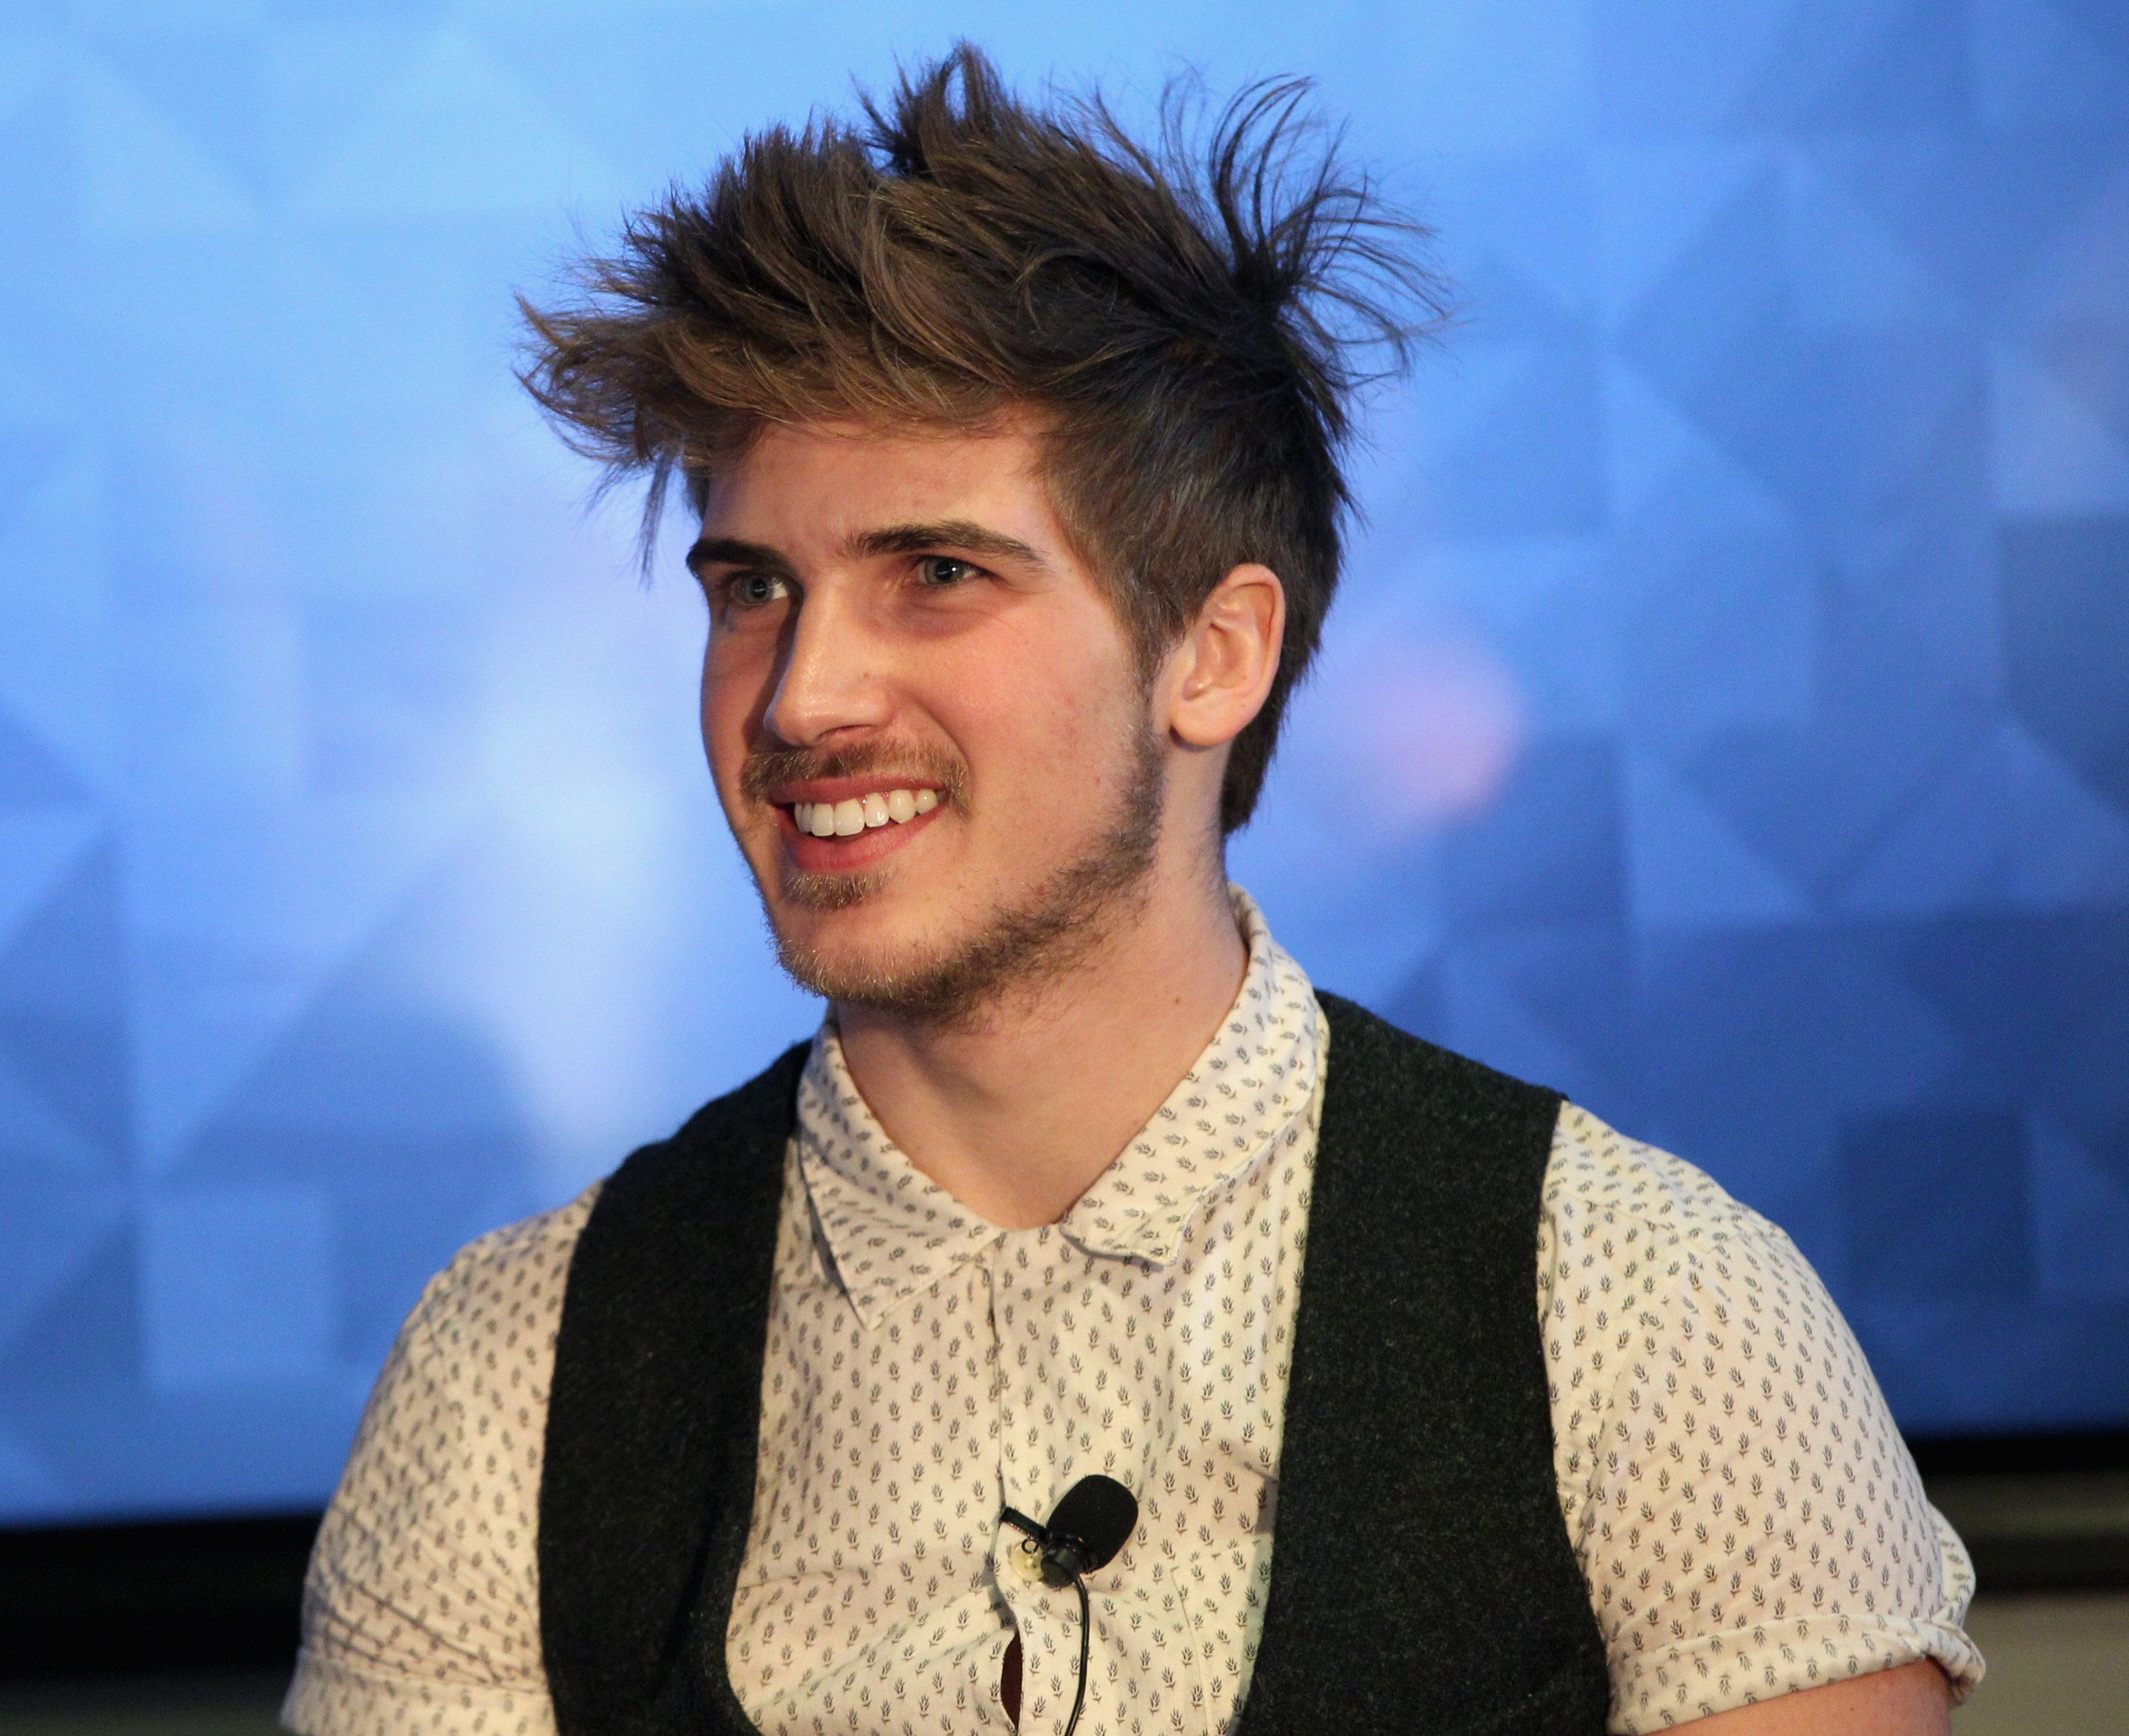 LOS ANGELES, CA - FEBRUARY 16:  YouTube personality Joey Graceffa speaks onstage during Vanity Fair Campaign Hollywood Social Club - 'YouTube All Stars:' Social Media Influencers Panel Discussion on February 16, 2015 in Los Angeles, California.  (Photo by Jonathan Leibson/Getty Images for Vanity Fair)